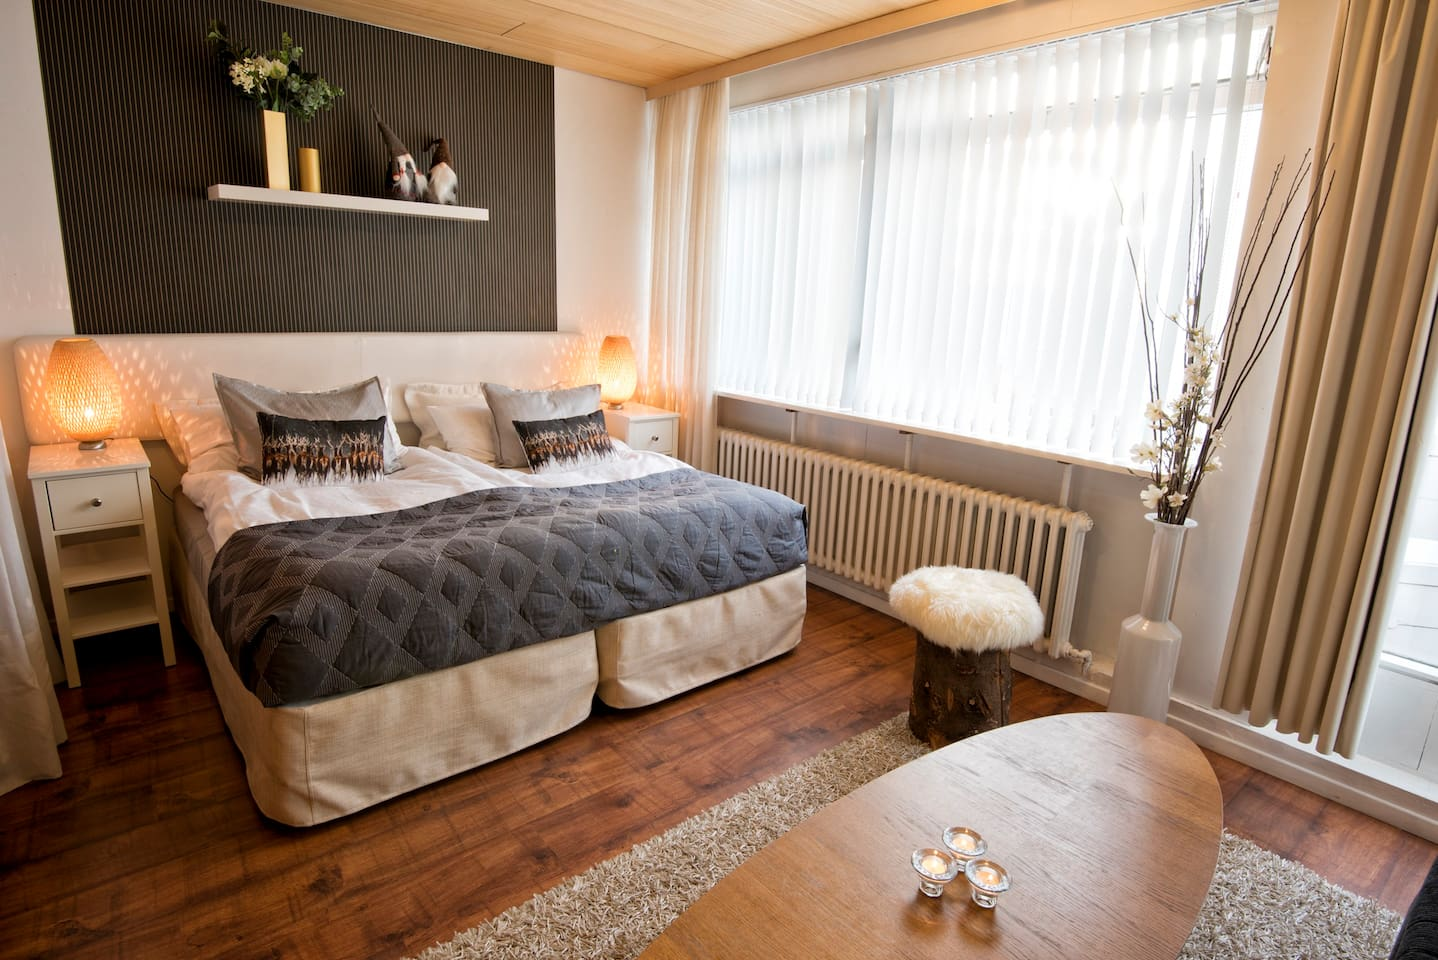 Bedroom with double bed and a sofa bed. The apartment has been through an overall remodeling and makeover